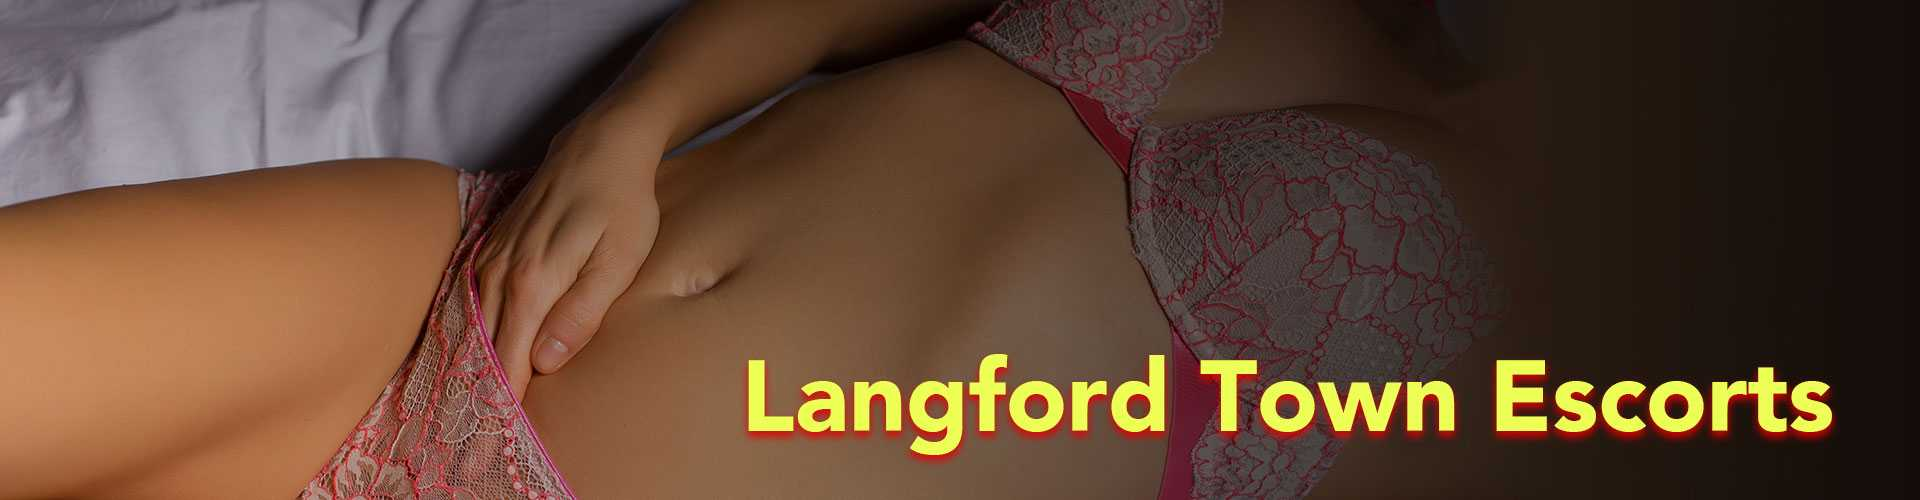 Langford Town escorts